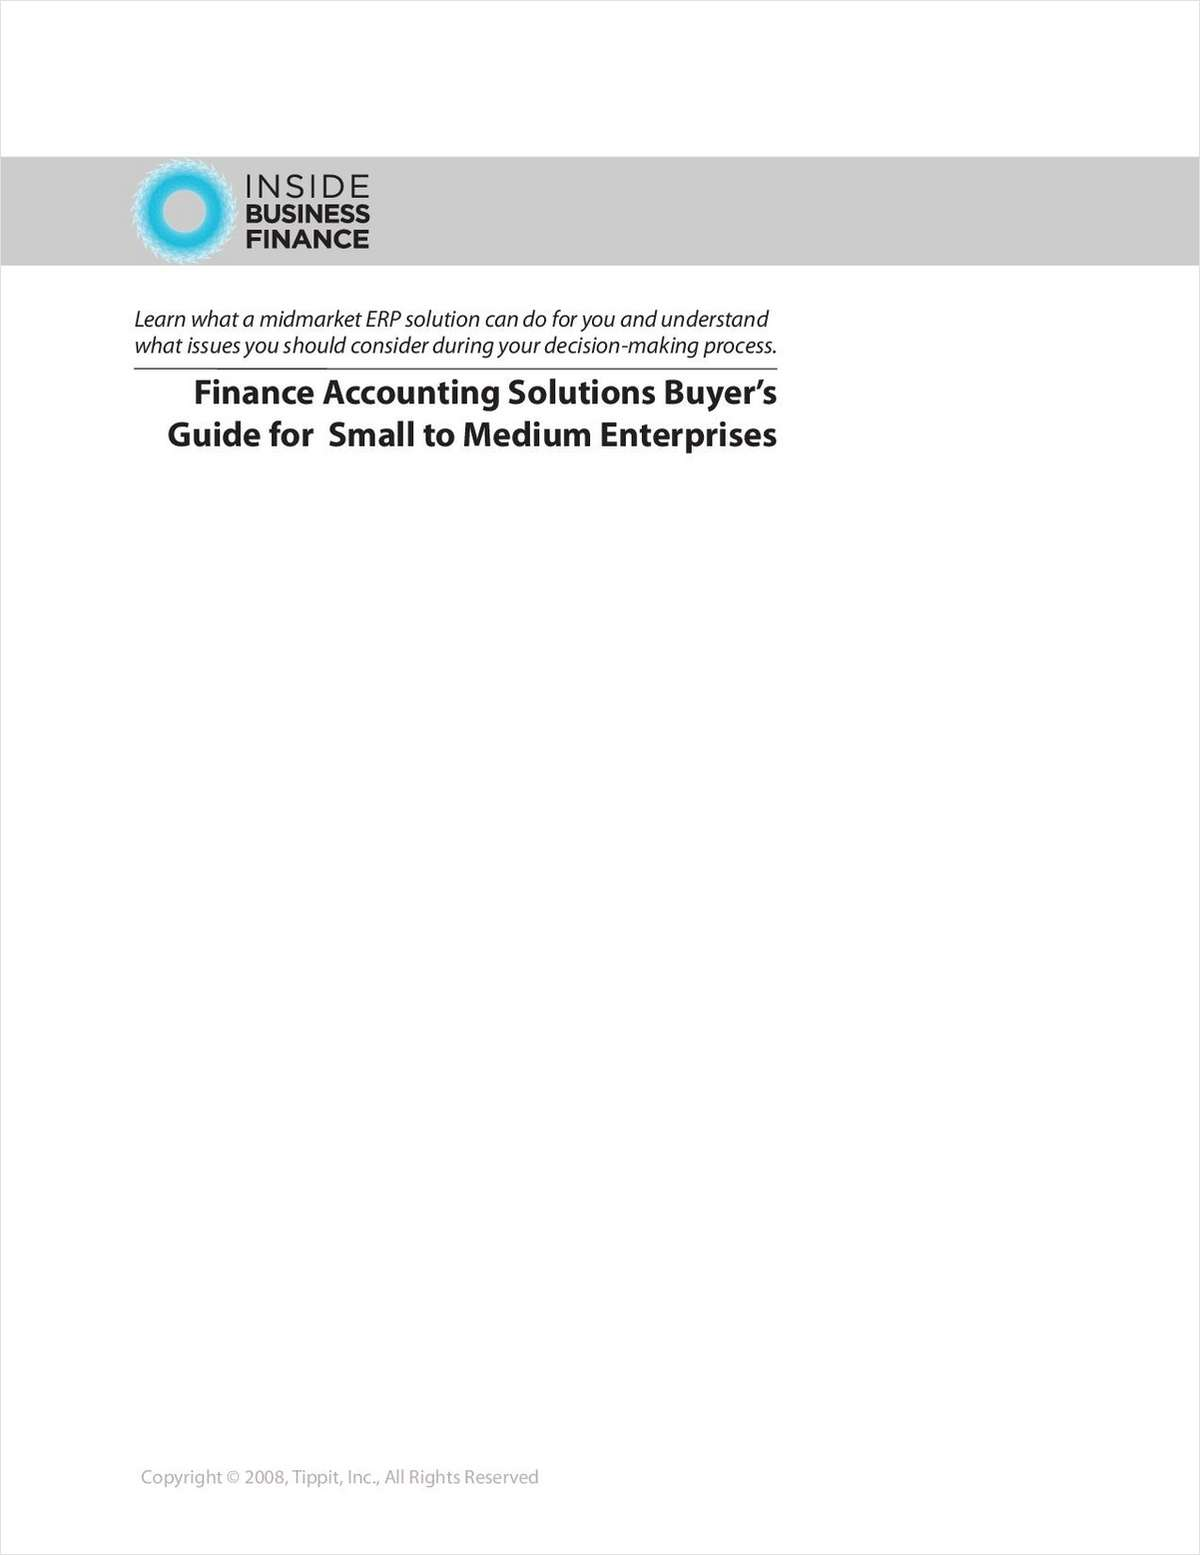 Finance Accounting Solutions Buyer's Guide for Small to Medium Enterprises